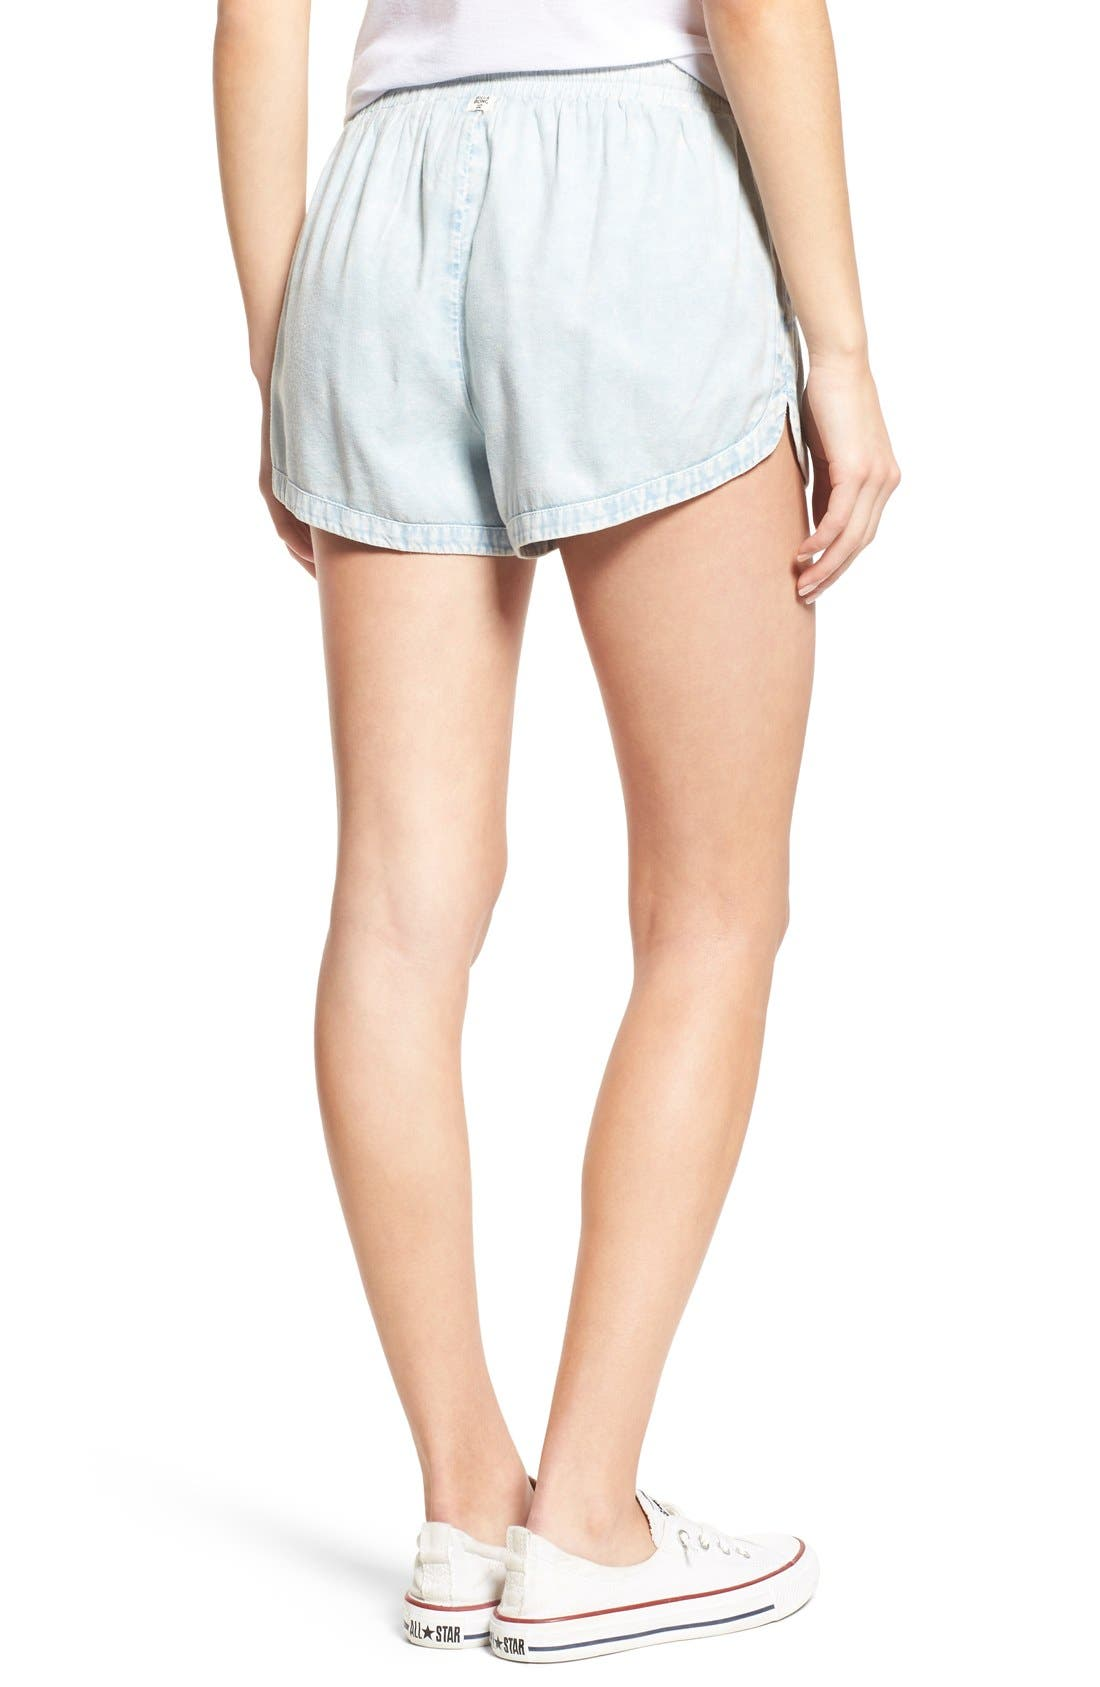 'Road Trippin' Shorts,                             Alternate thumbnail 4, color,                             CHAMBRAY BLUE